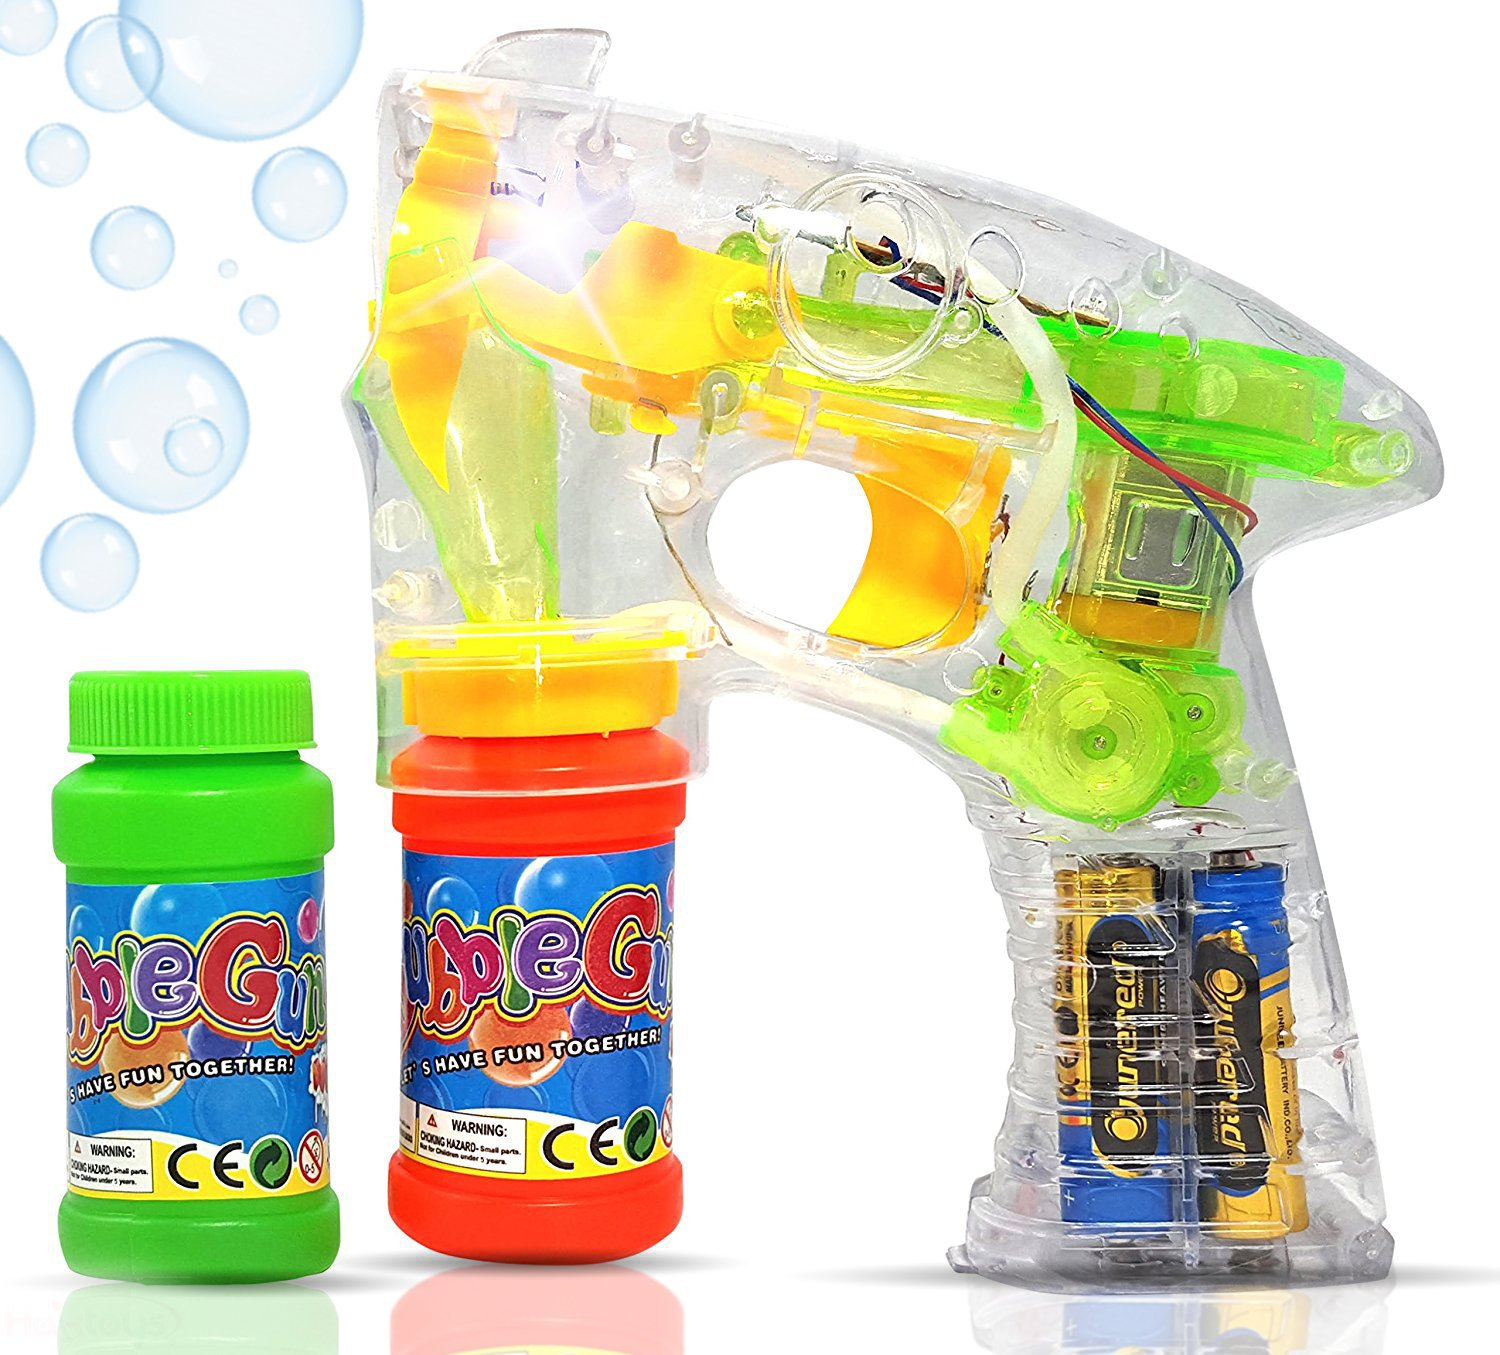 Haktoys Regular Transparent Bubble Gun Shooter Light Up Blower Machine | Bubble Blaster for Kids Parties Etc. with LED Flashing Lights Extra Refill Bottle Sound Free Batteries Included